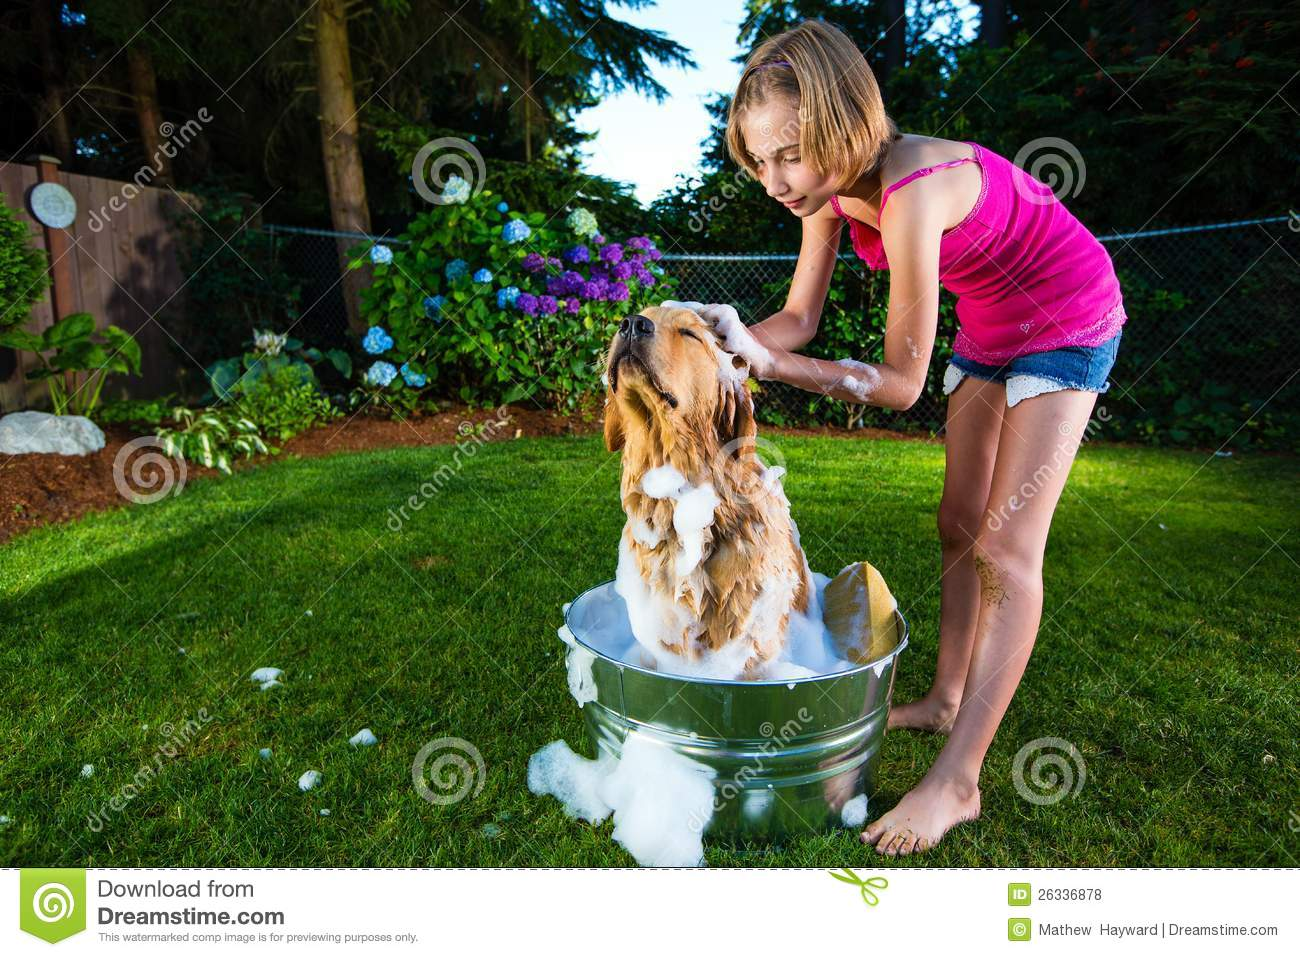 Los 19 Gatos Mas Torpes De 2014 together with 451837775088020824 additionally Cute Cartoon Animals Page 1 as well Royalty Free Stock Image Dog Shower Pug Taking Bath Image30409256 also Cute Cartoon Animals Page 2. on funny dog bath